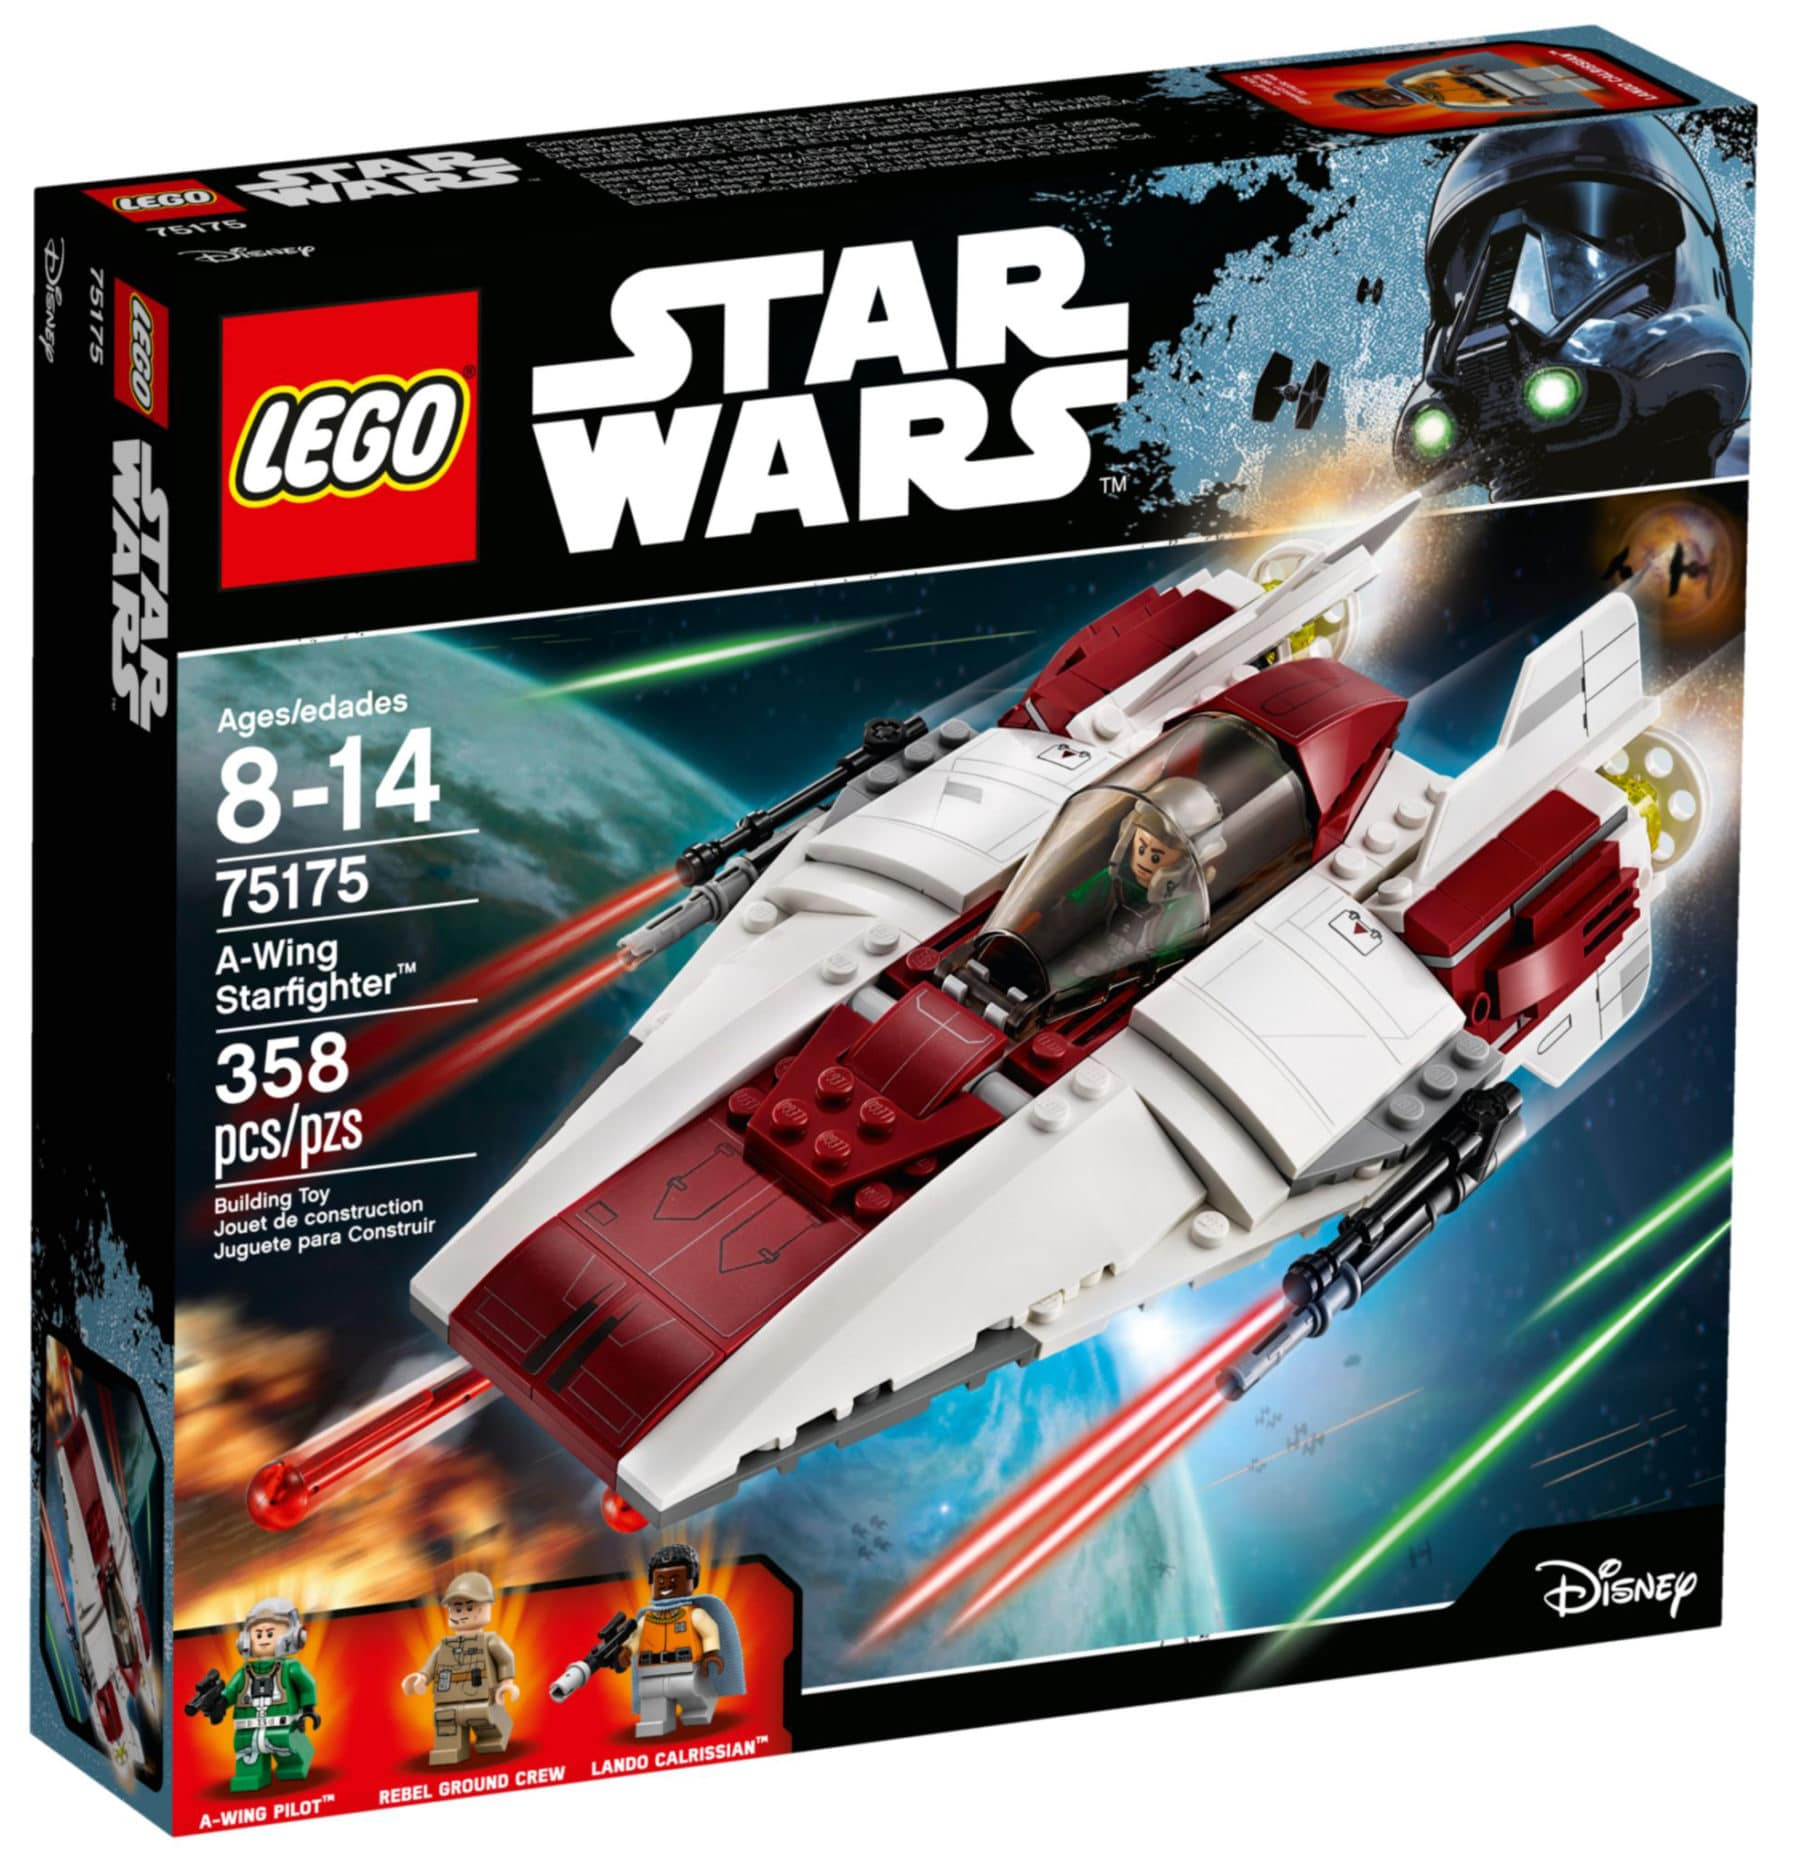 LEGO Star Wars 75175 A-Wing Fighter